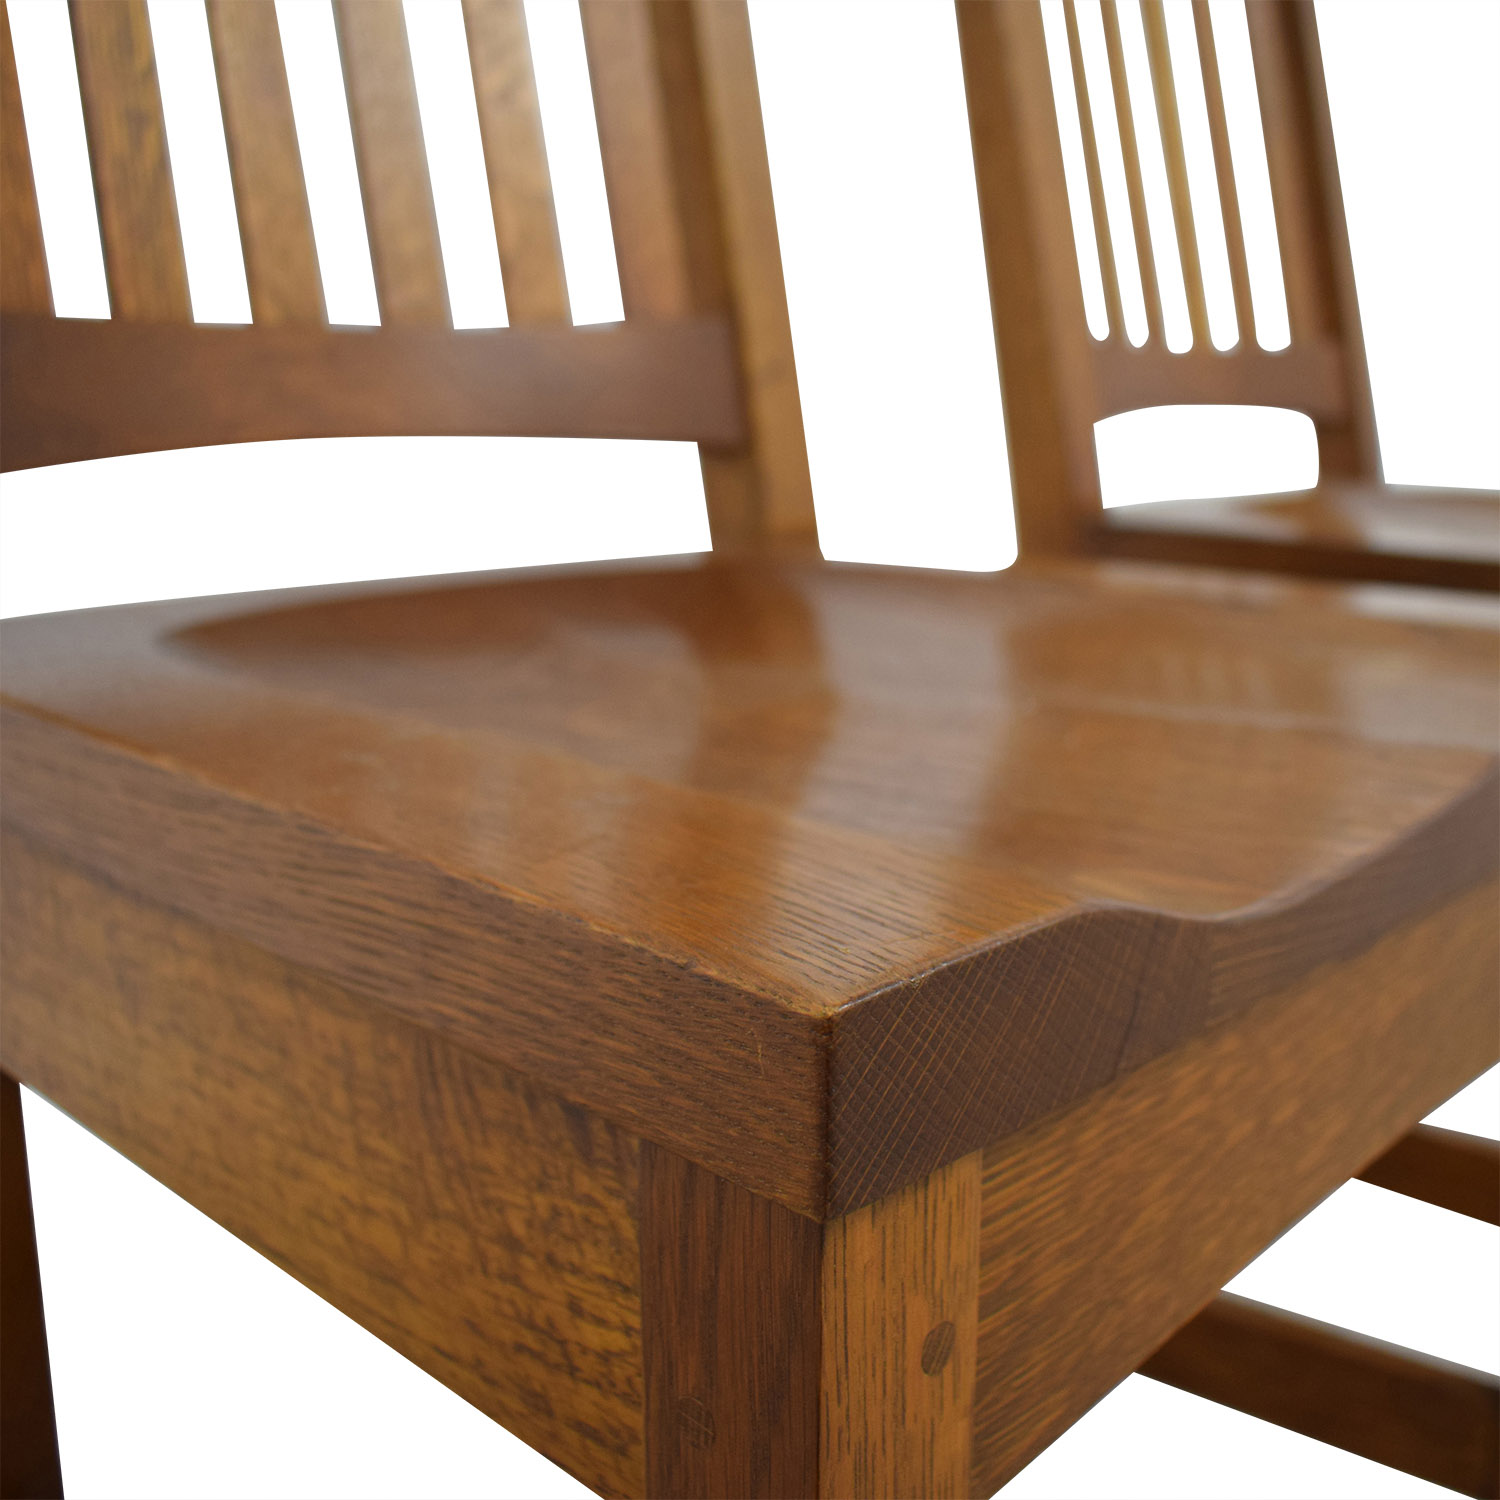 Stickley Audi & Co Handcrafted Wooden Chairs / Dining Chairs